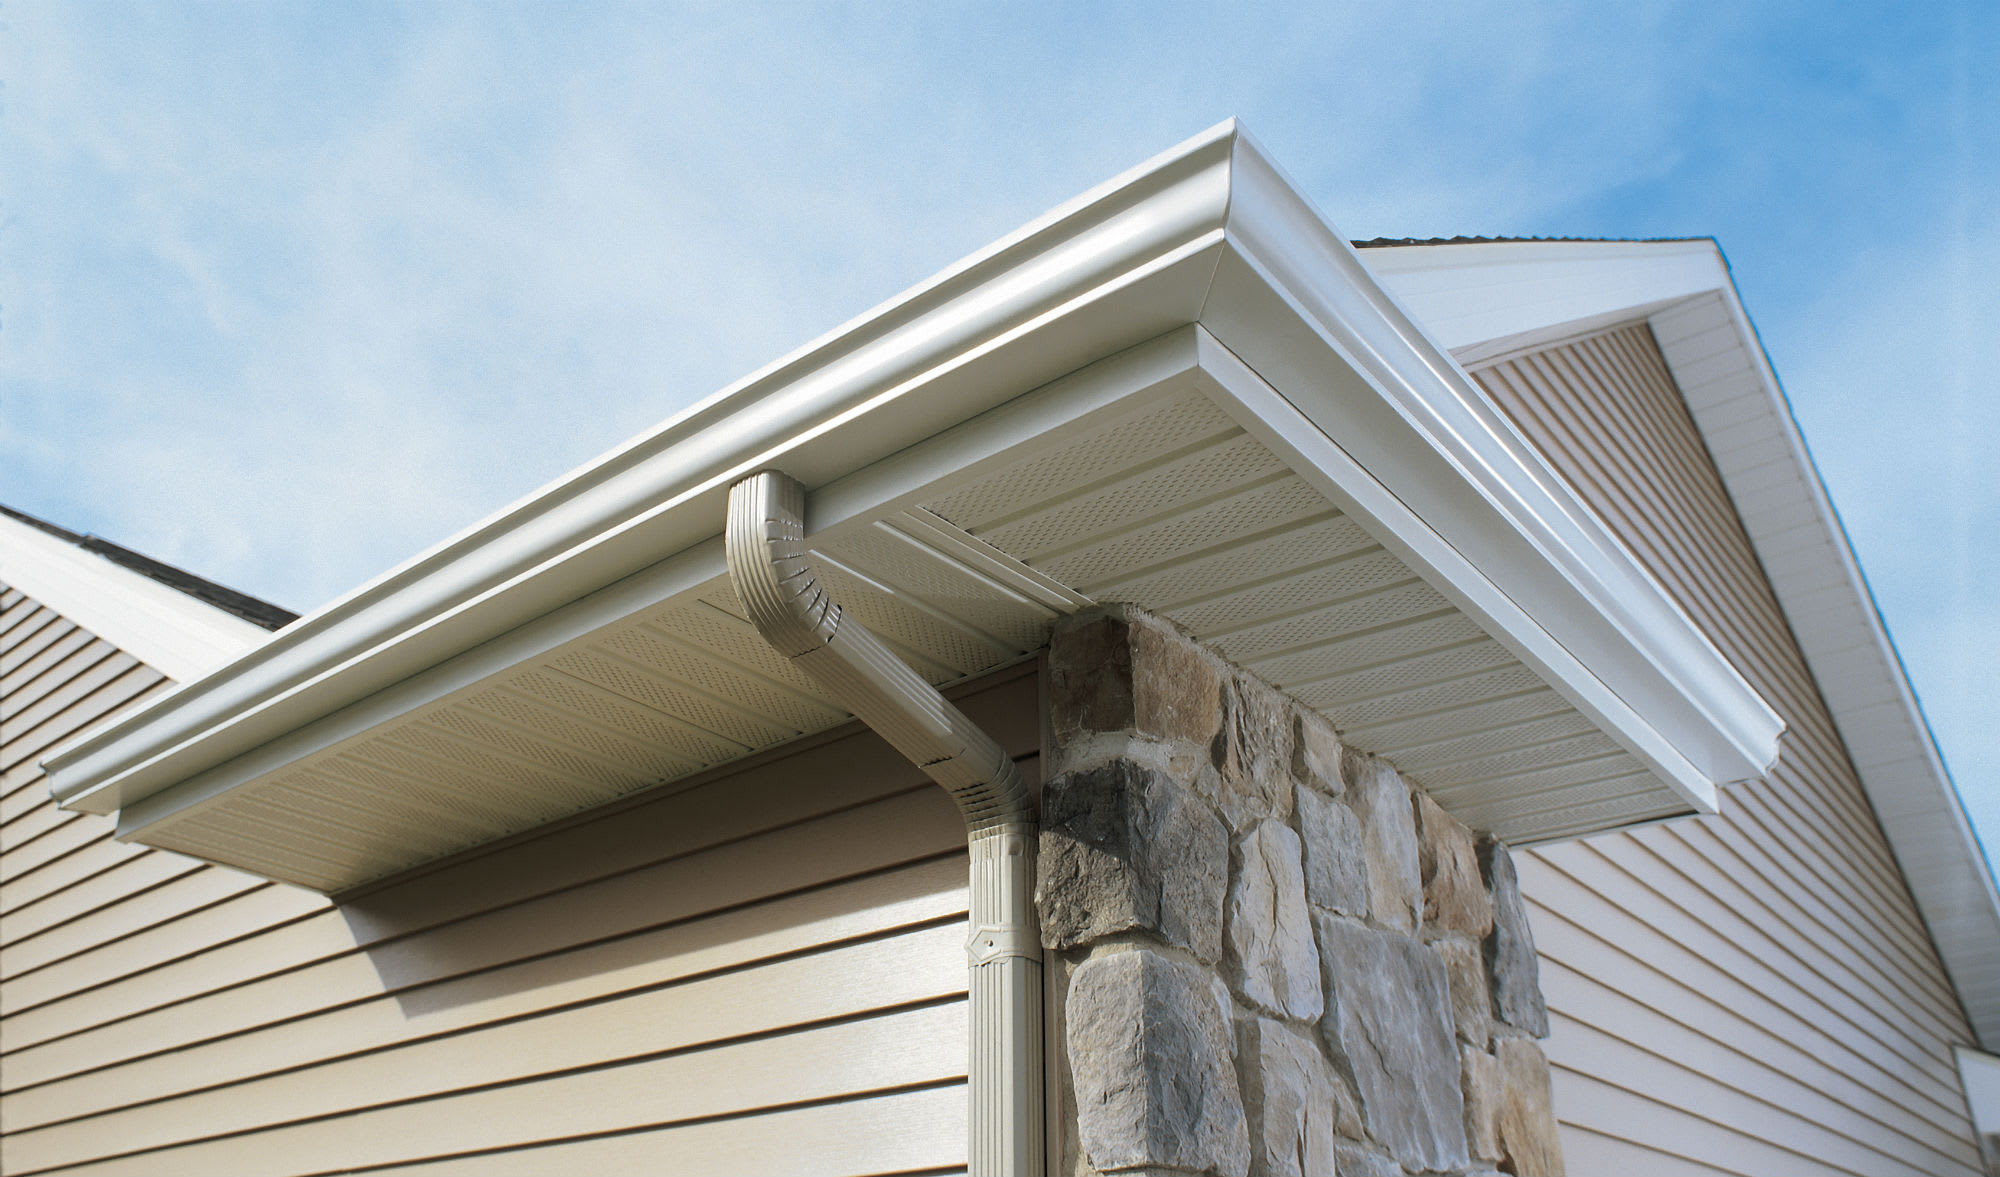 Gutters   Residential Property Insurance Claim Adjuster Firm